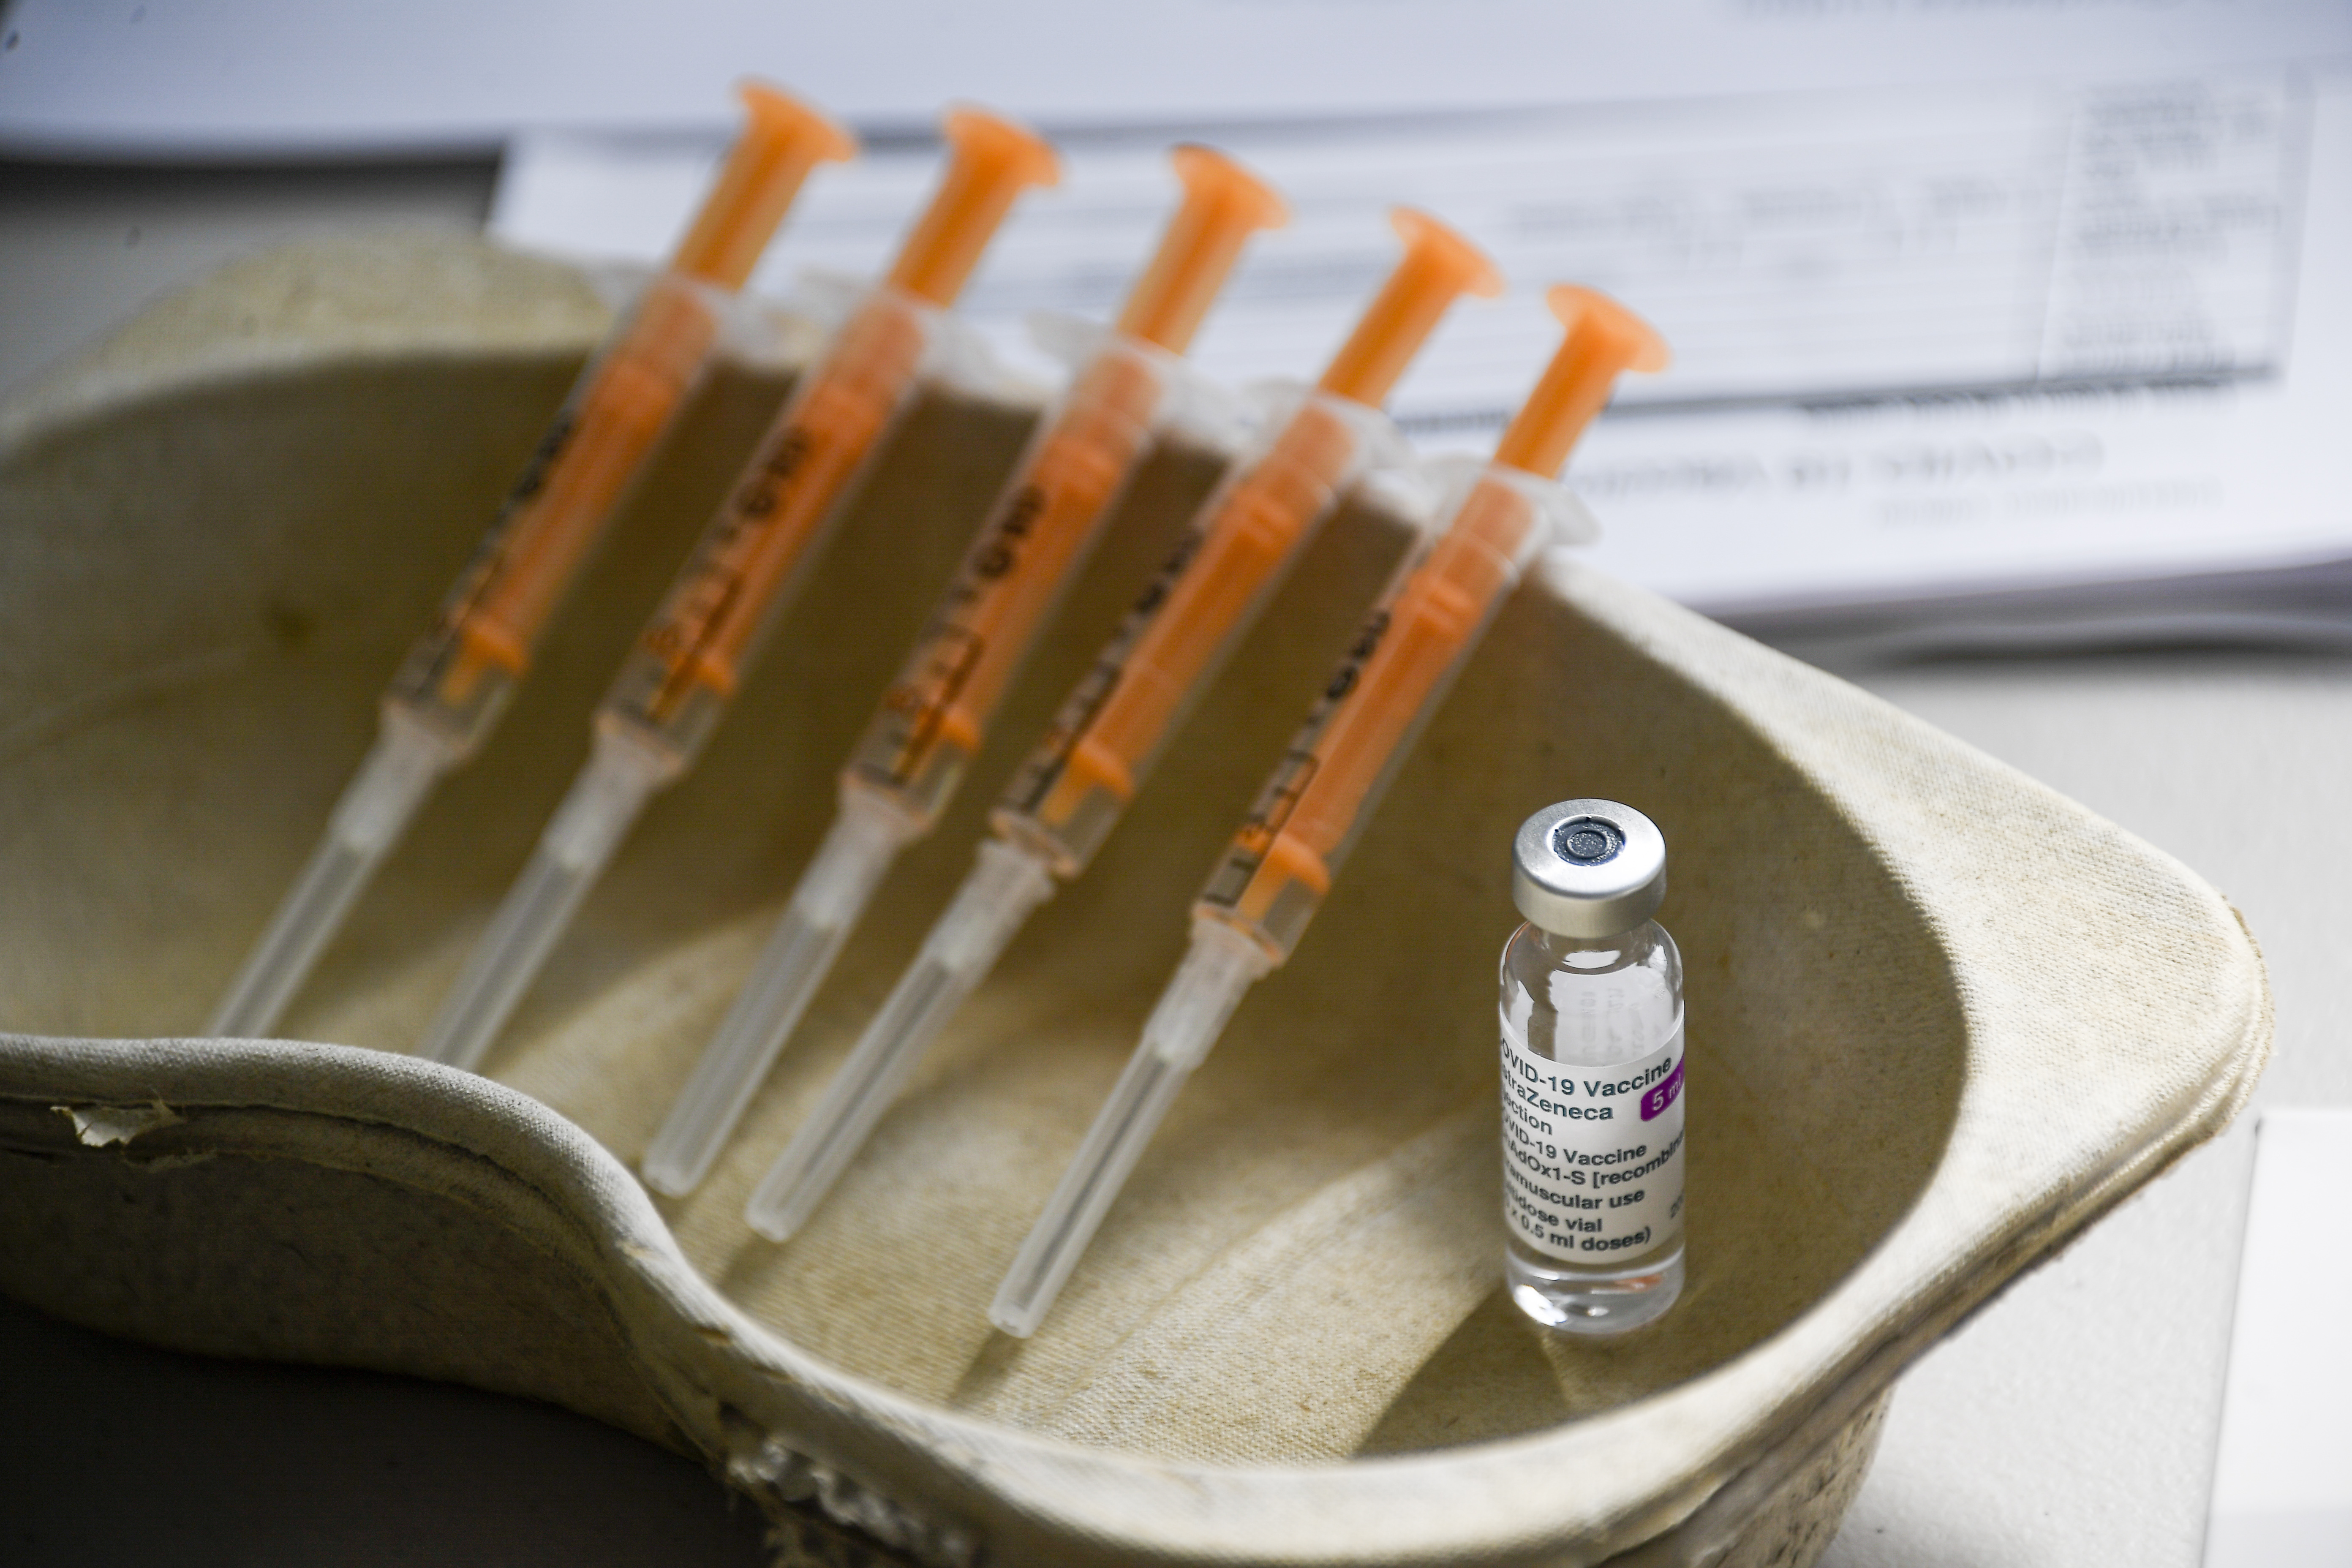 Rare cases of blood clotting have been linked to the AstraZeneca vaccine.